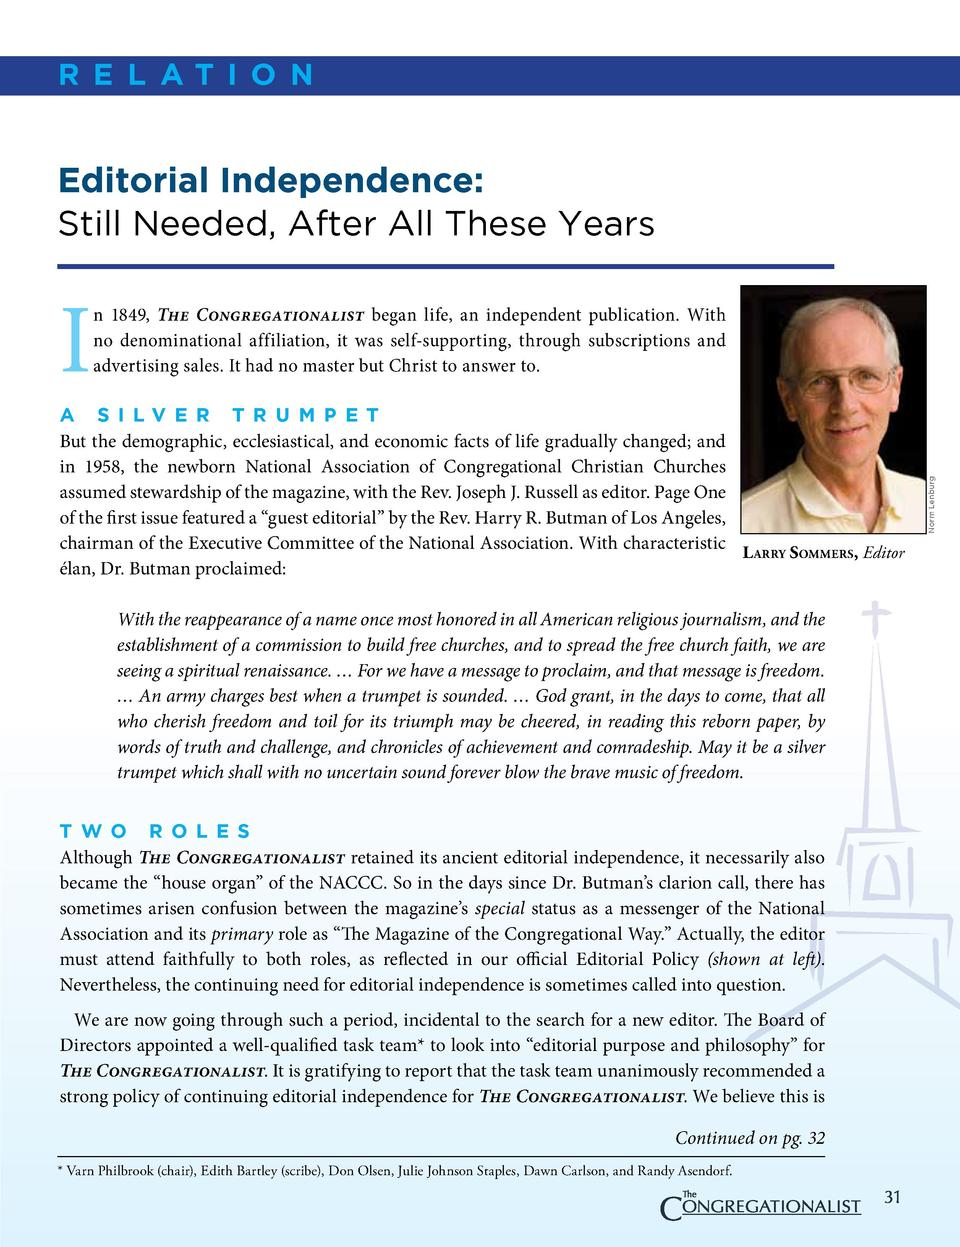 r e l at i o N  editorial independence  Still needed, After All These Years  a s i lV e r t r u M P e t But the demographi...